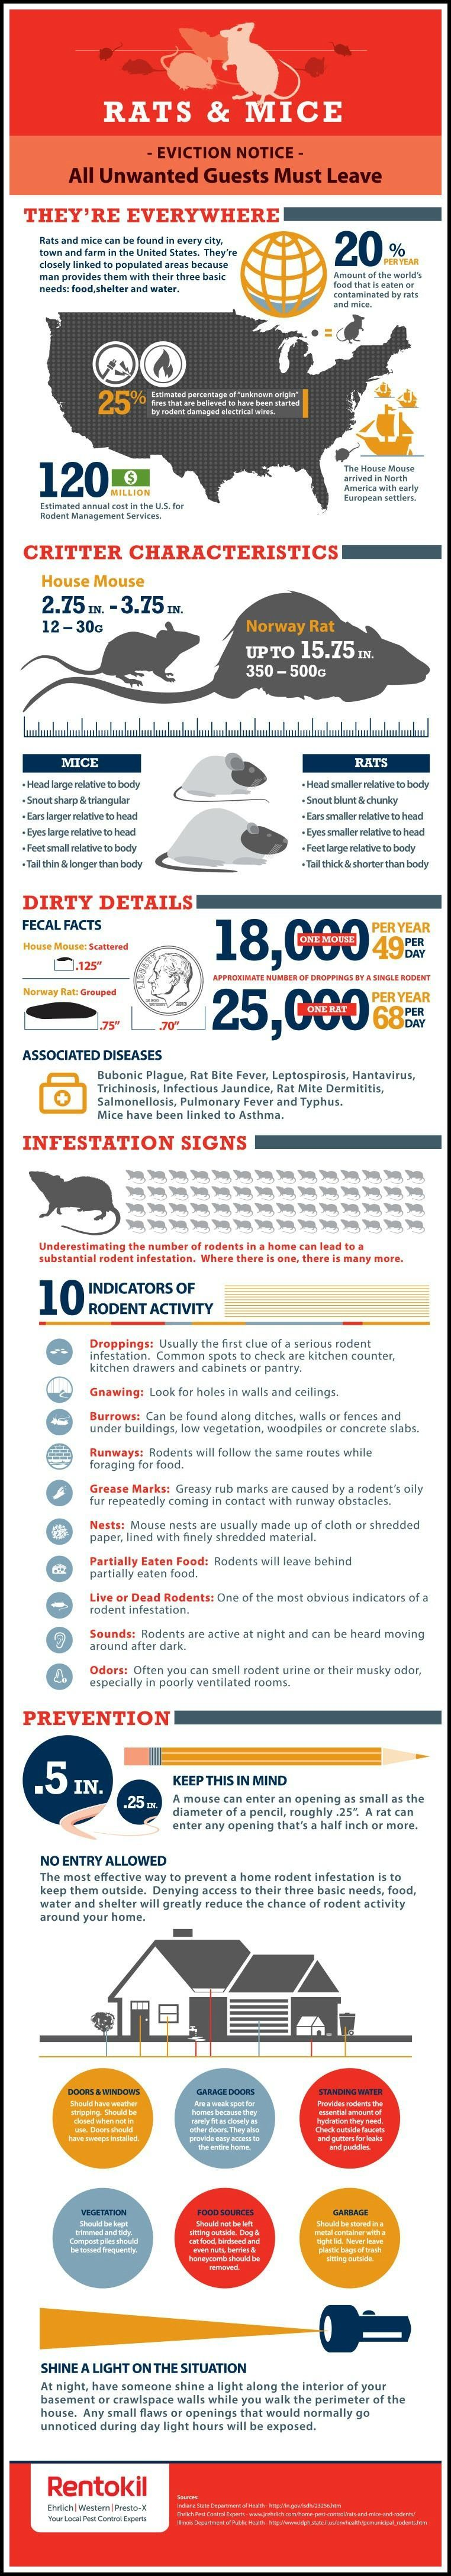 Facts about rats and mice infographic infographic mouse